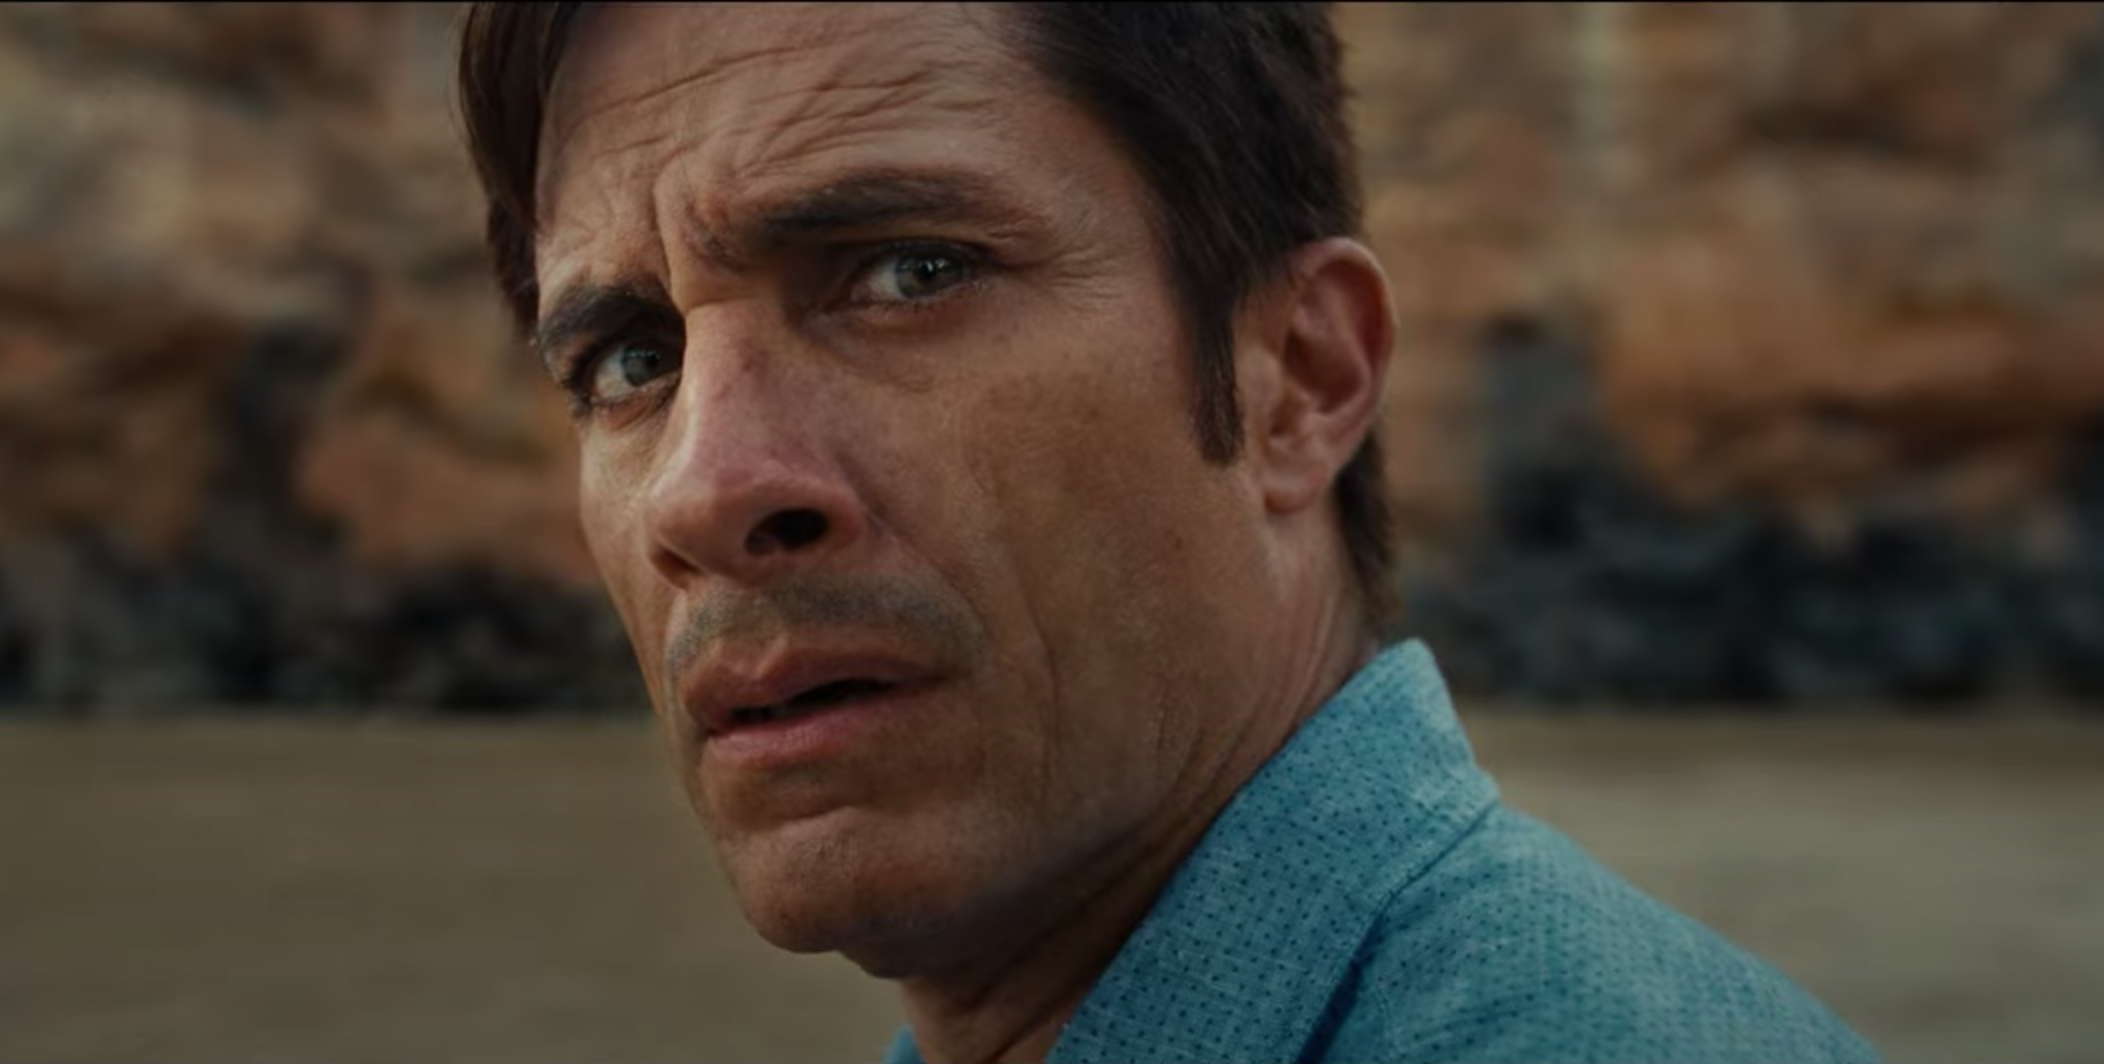 A close-up of Gael García Bernal's face. He looks confused.